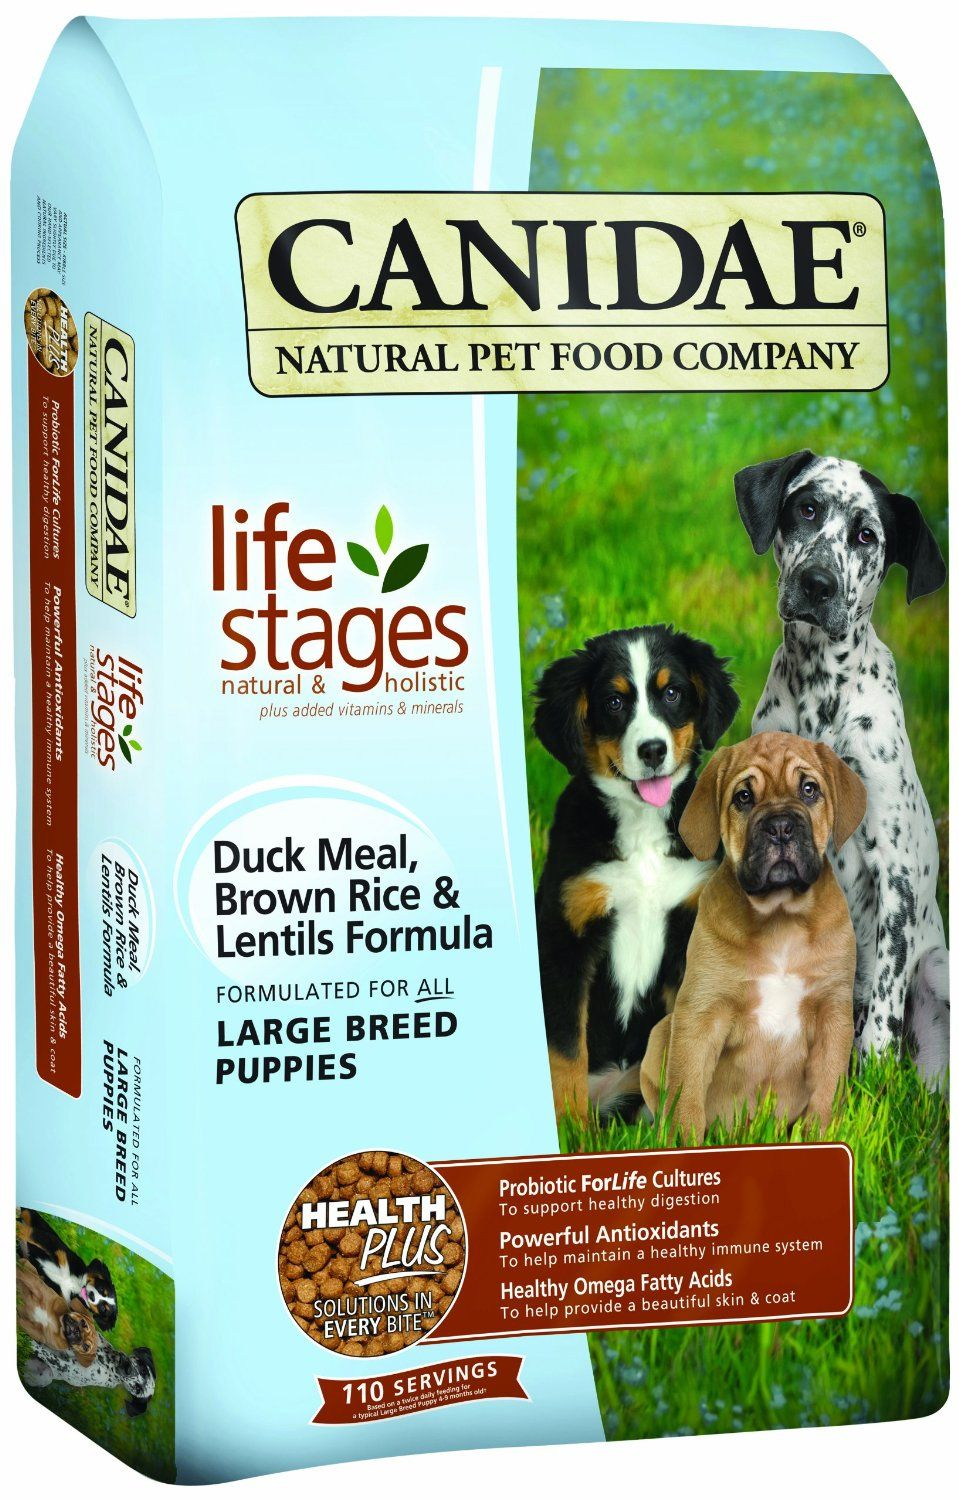 CANIDAE Life Stages Duck Meal Dog Food Large breed puppy